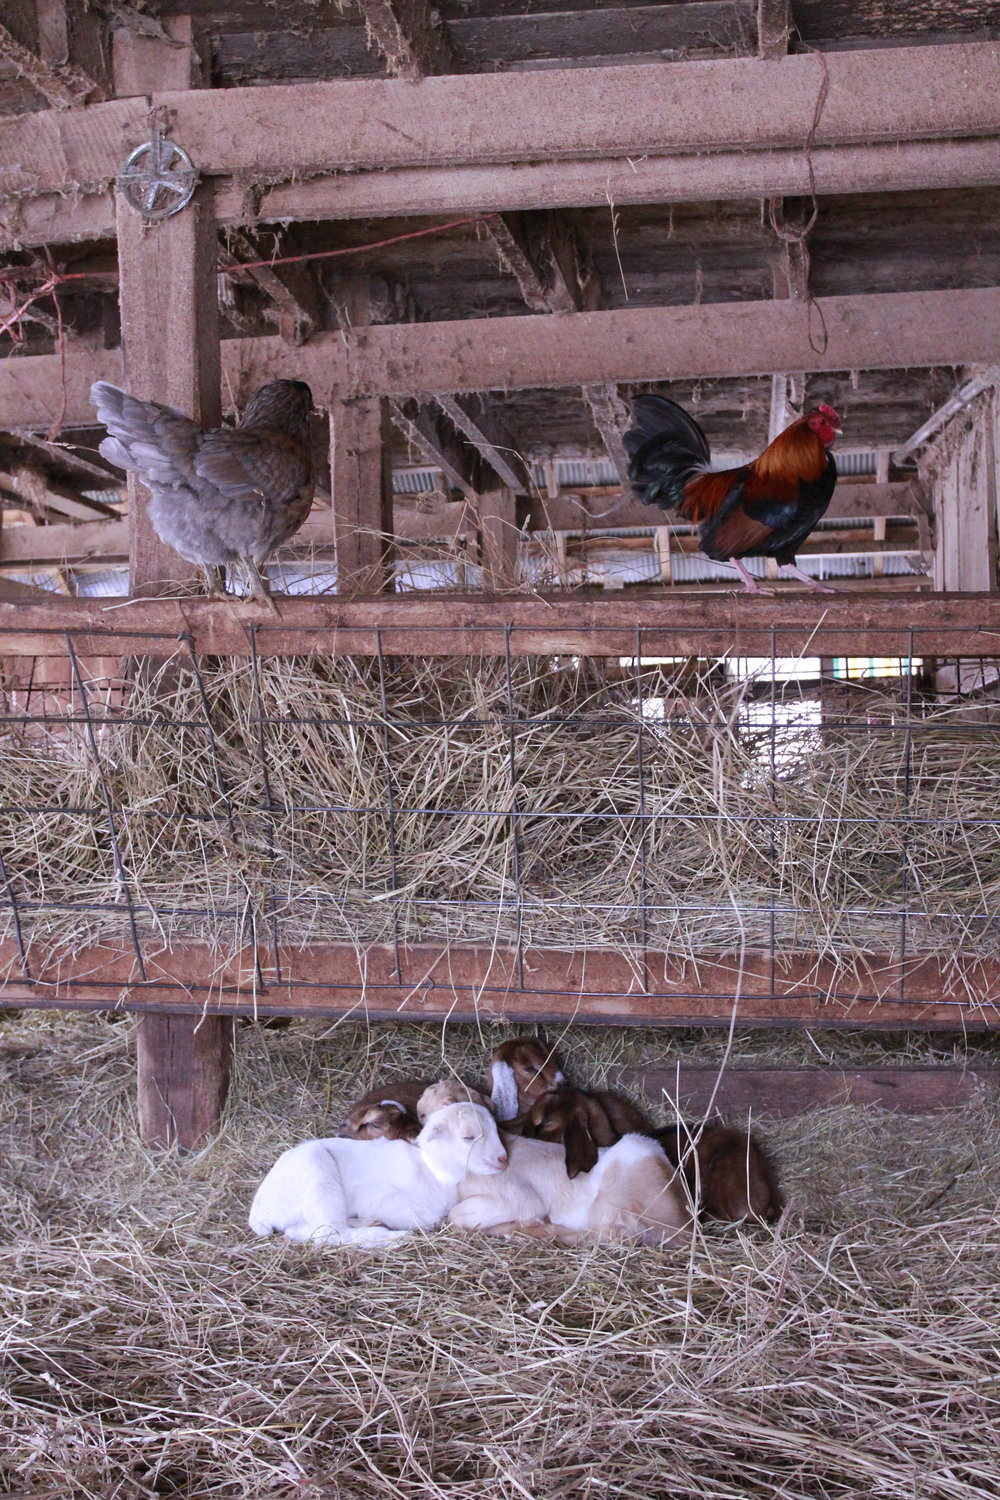 Kids snuggle up under the hay manger to stay warm.